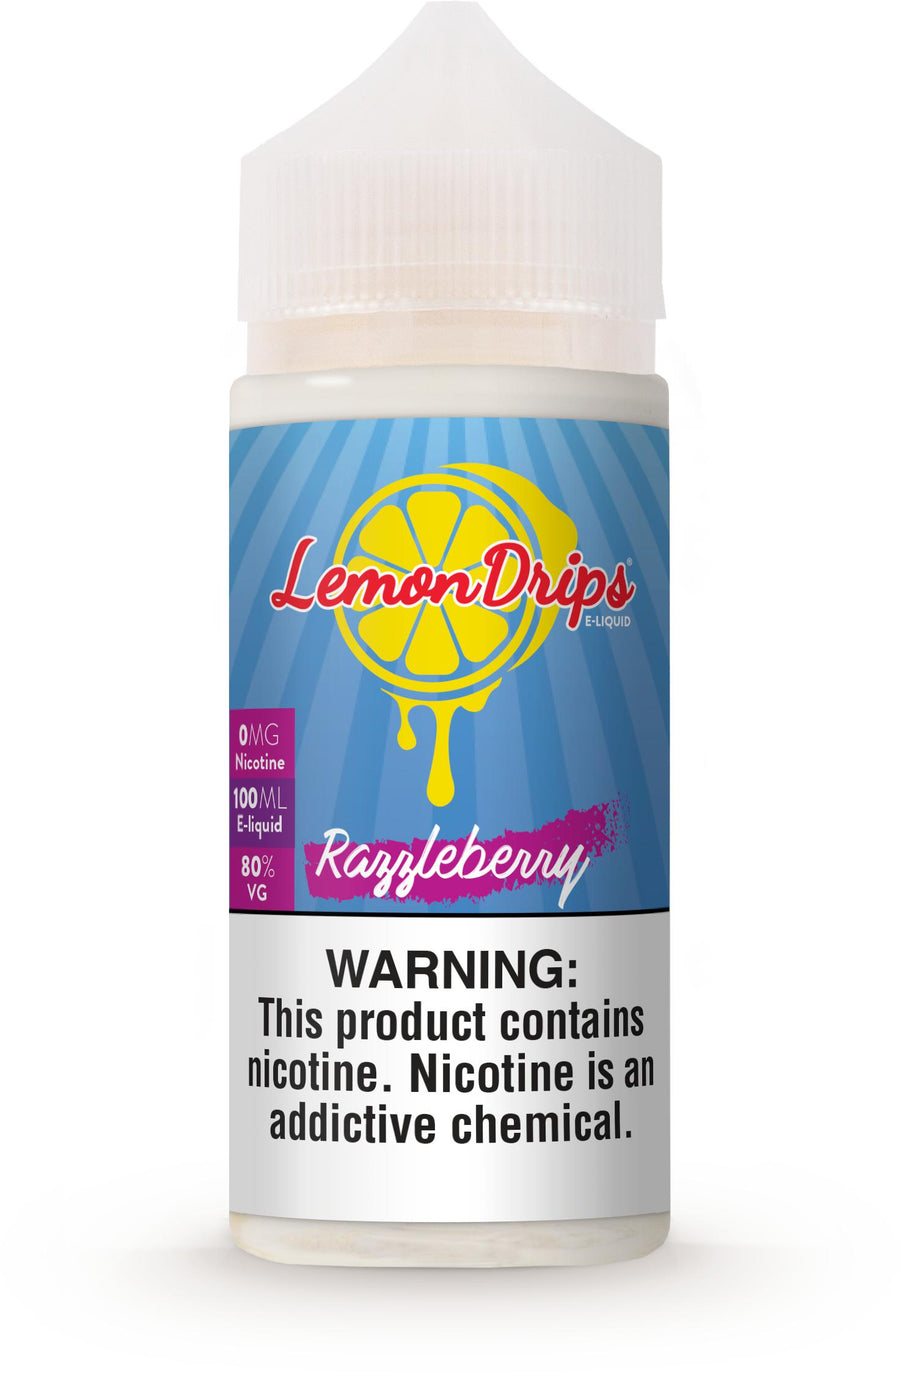 100 mL LemonDrips - Razzleberry